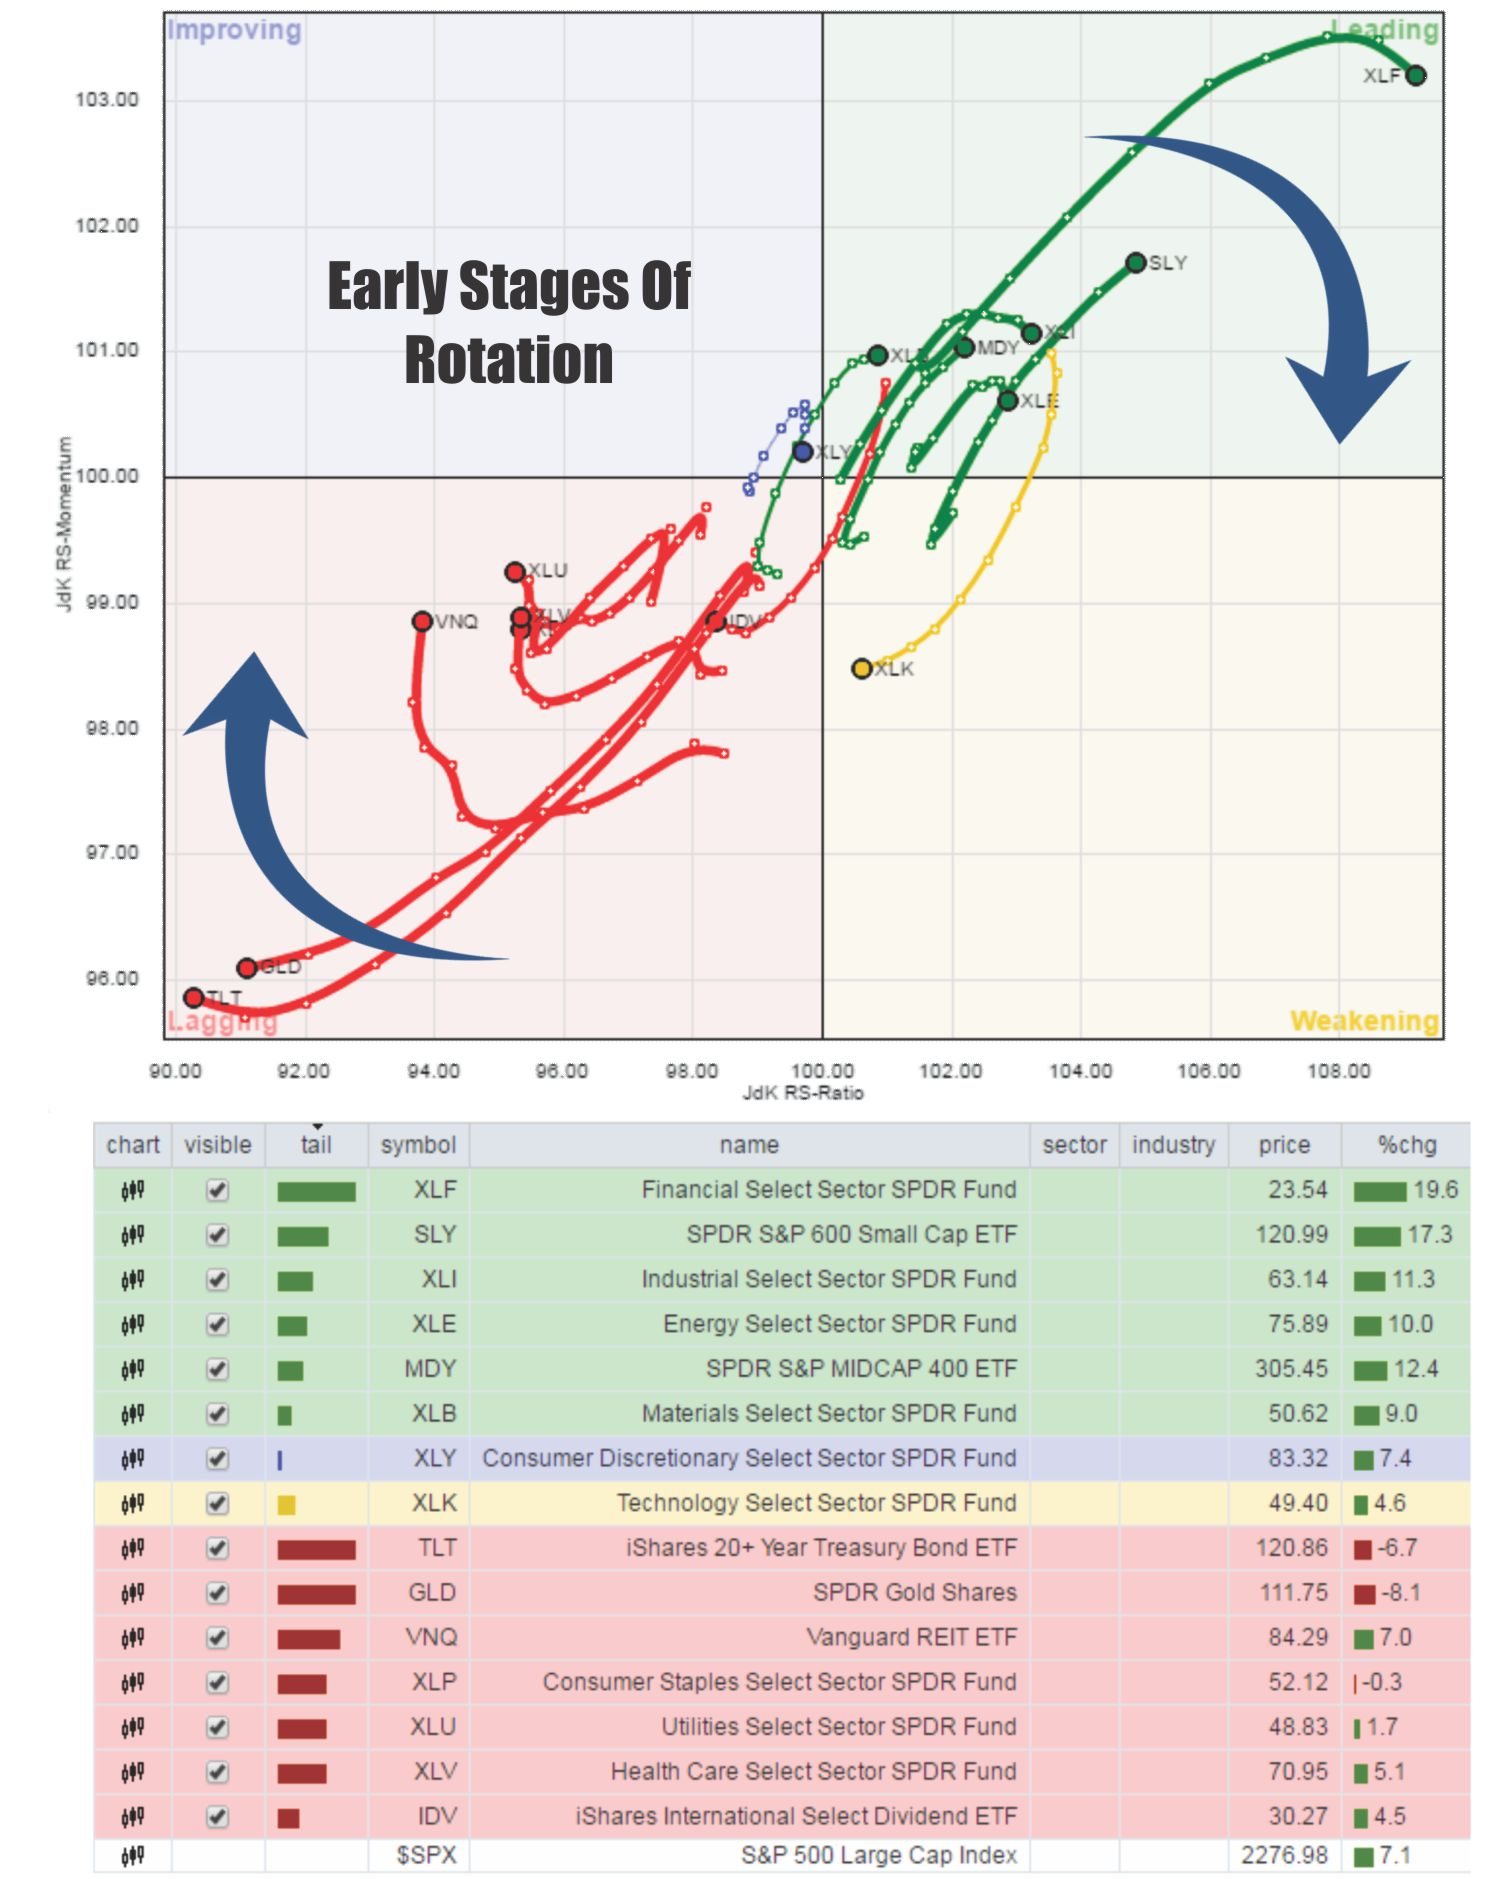 Early Stages Of Sector Rotation, as of January 5